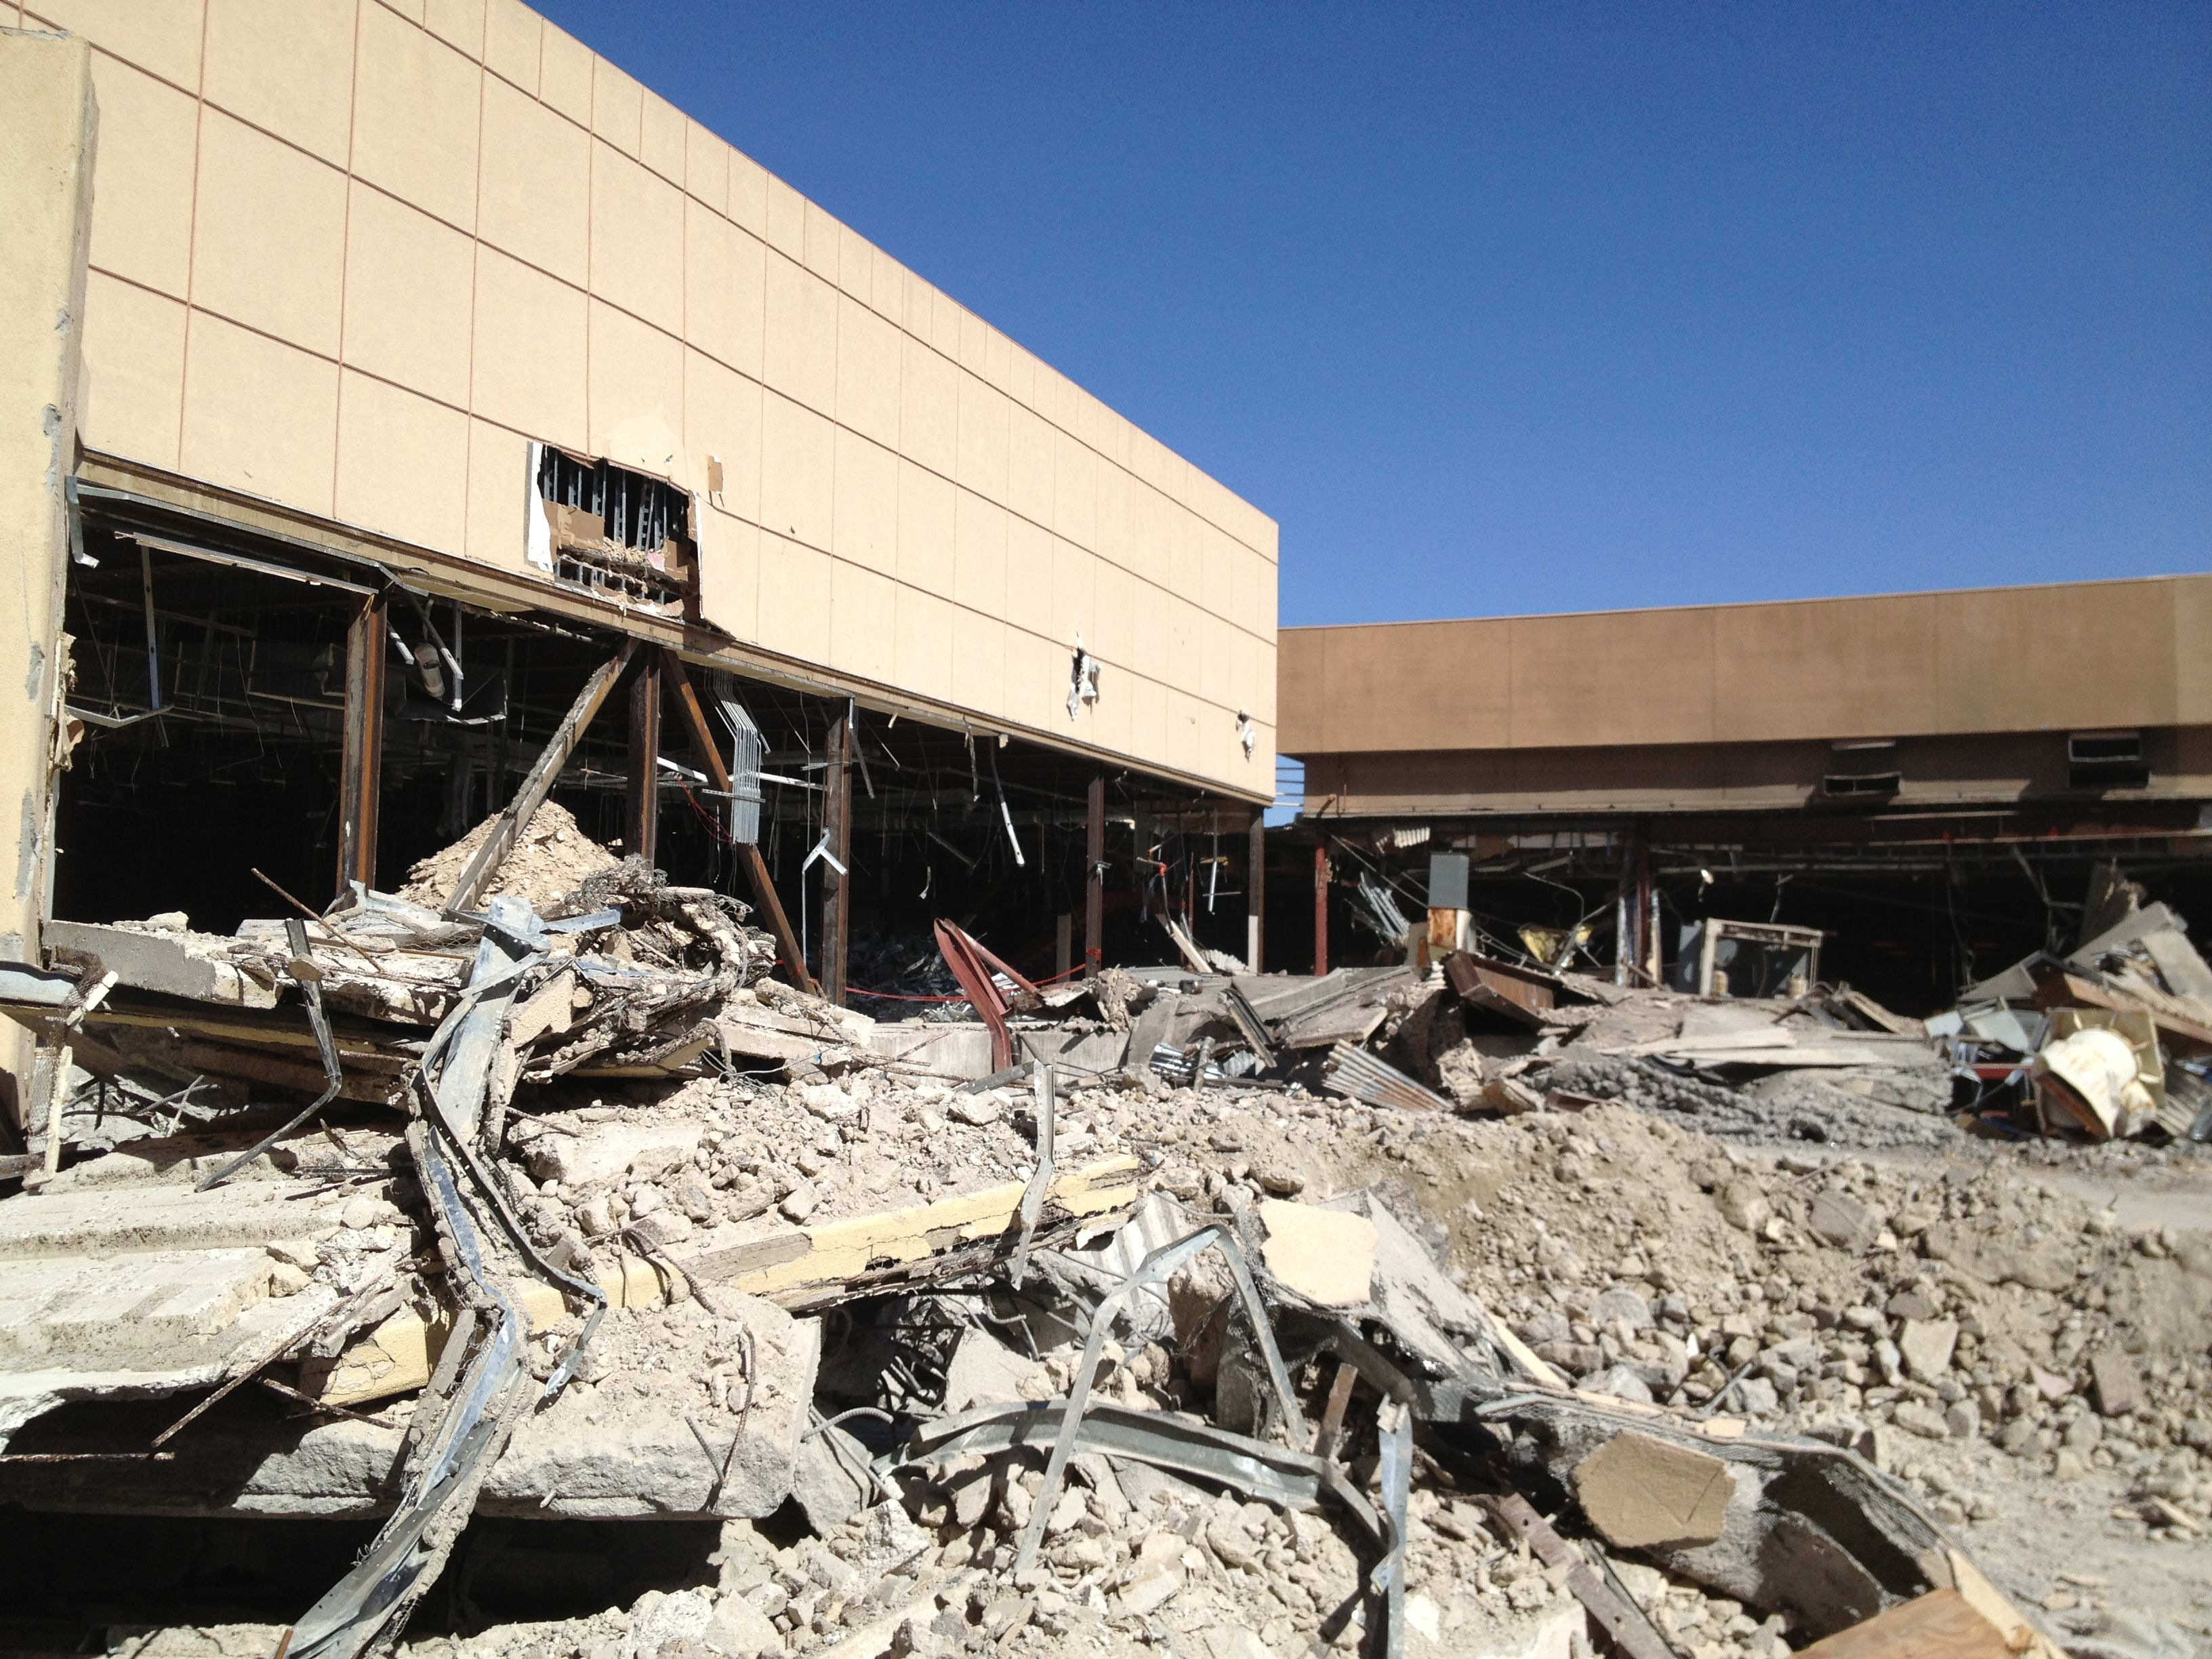 Desert Fashion Plaza Demolition Uptown Palms Fashion Plaza